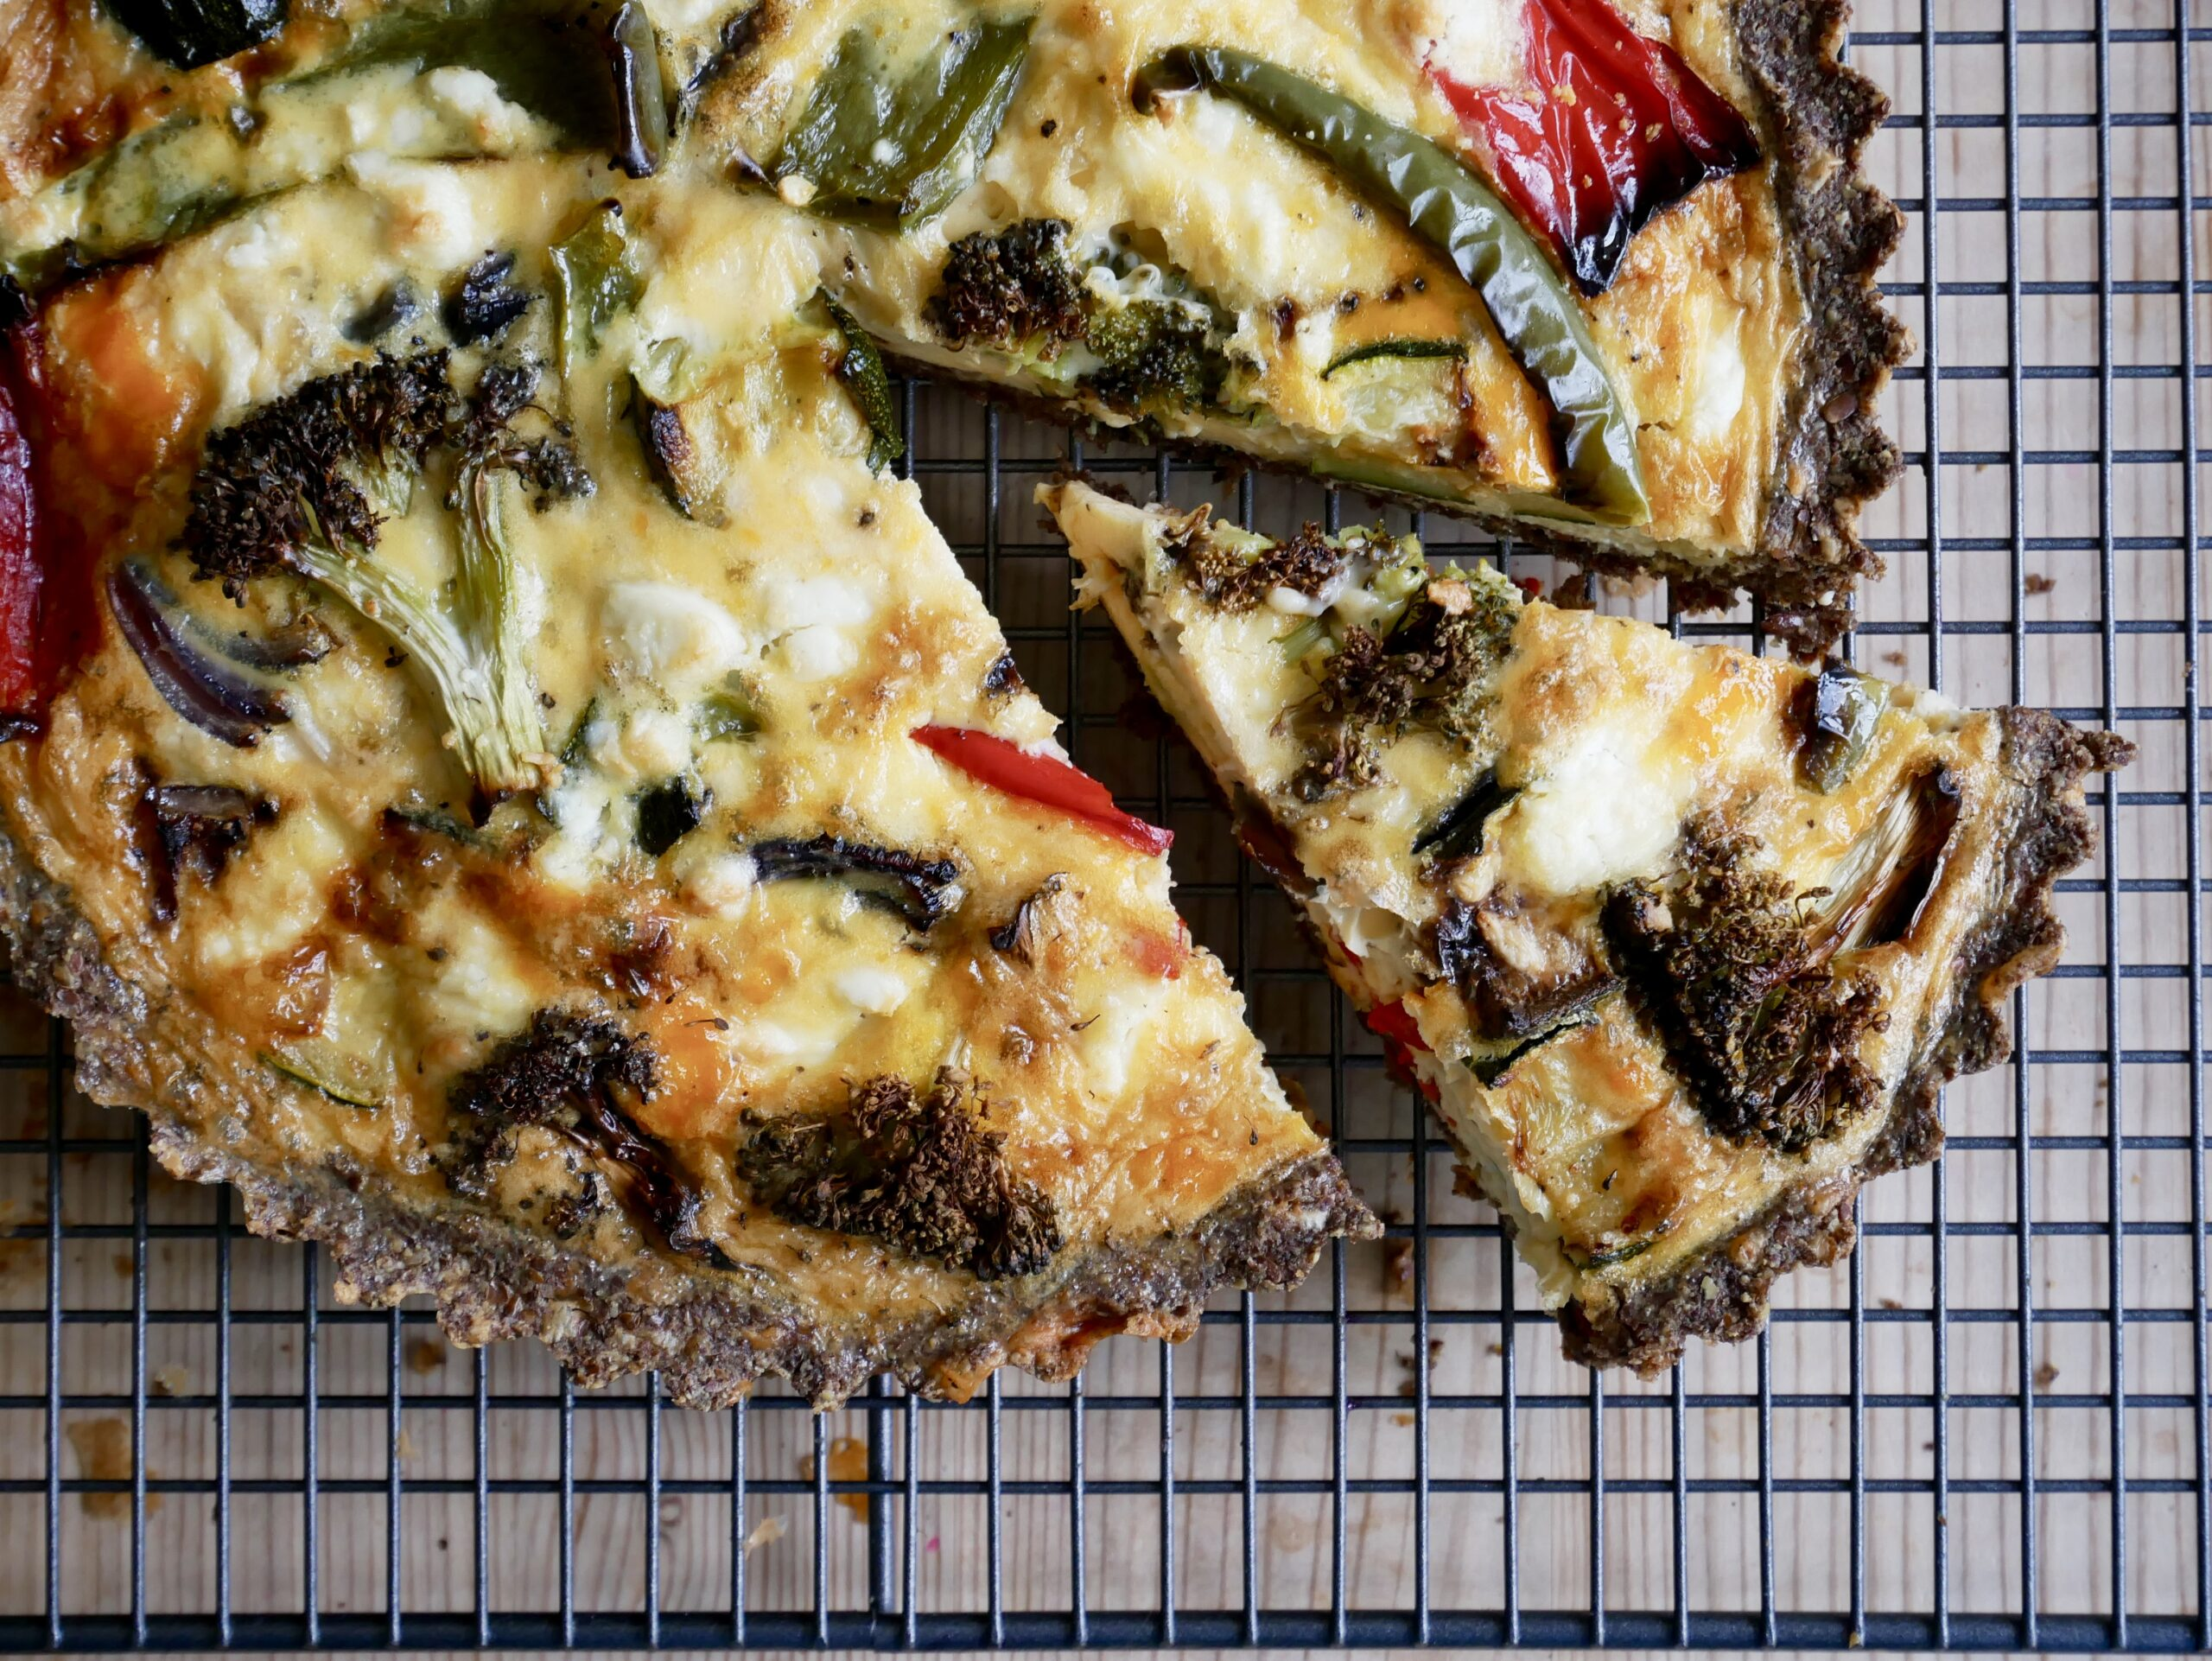 Roasted vegetable quiche with a cheddar crust